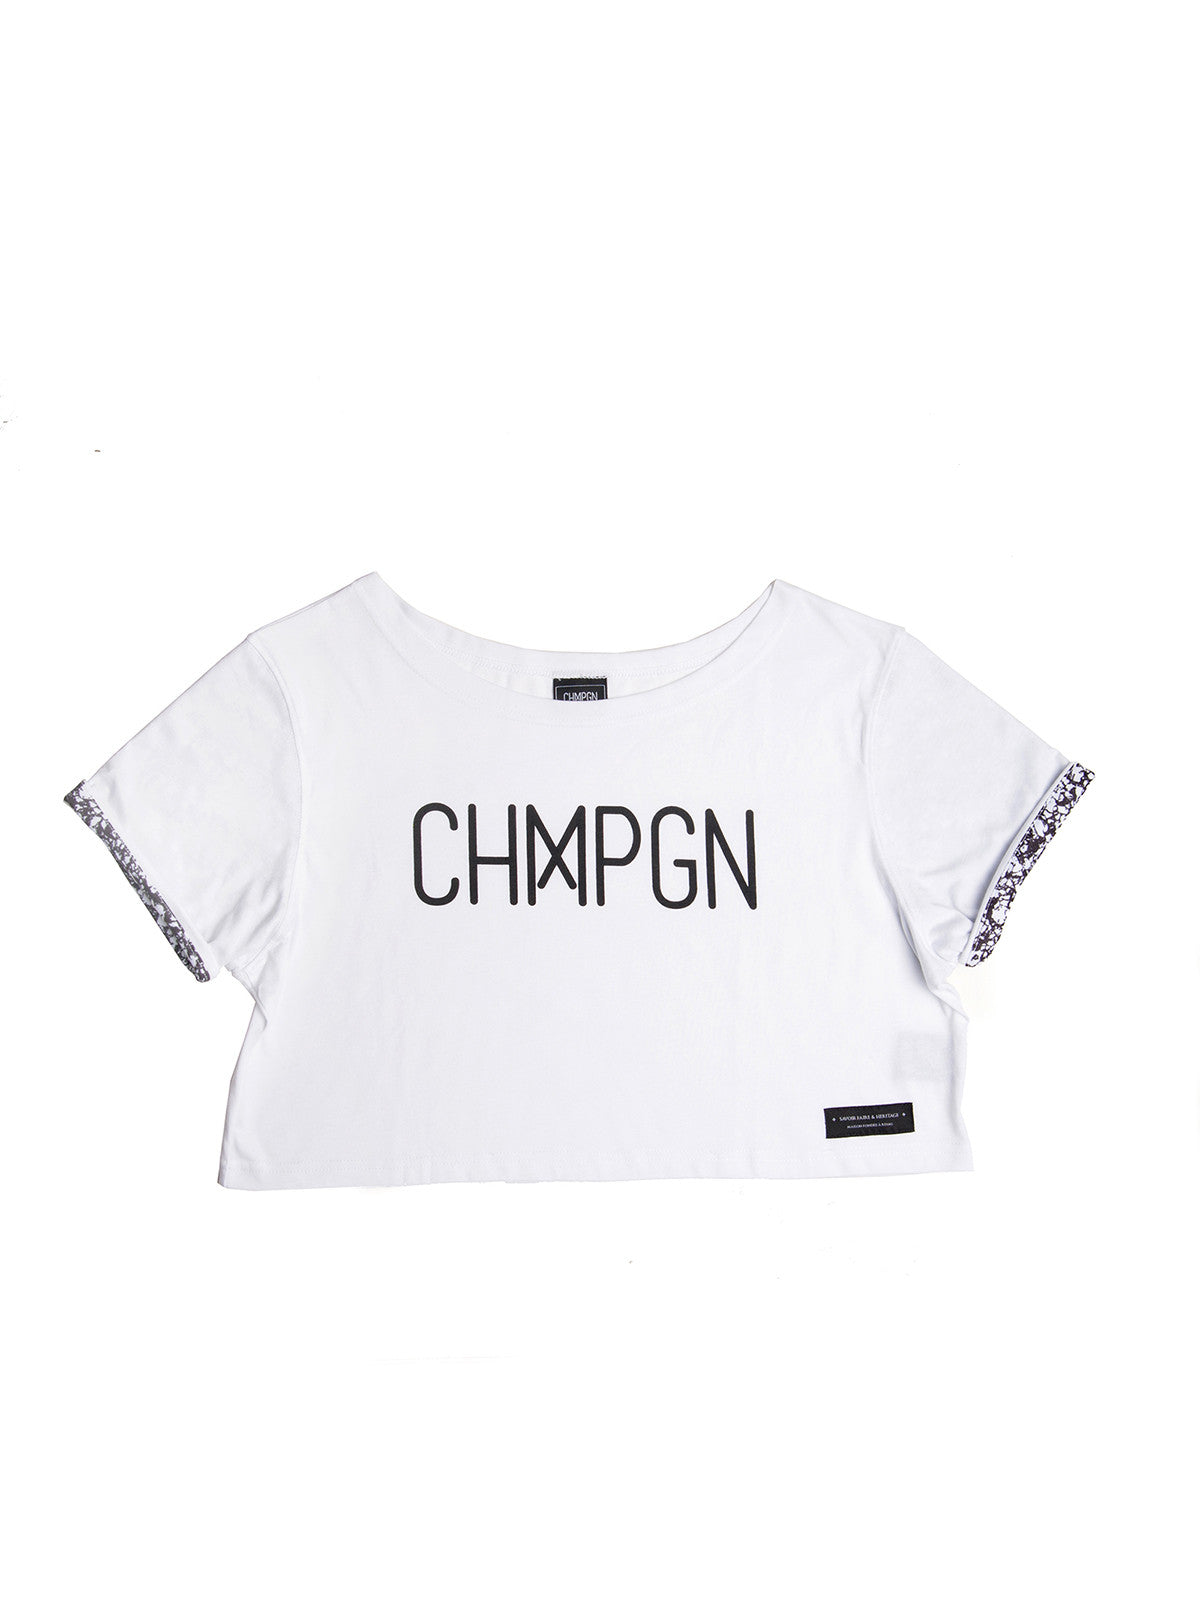 CHMPGN CLASSIQUE CROPPED - BLANC